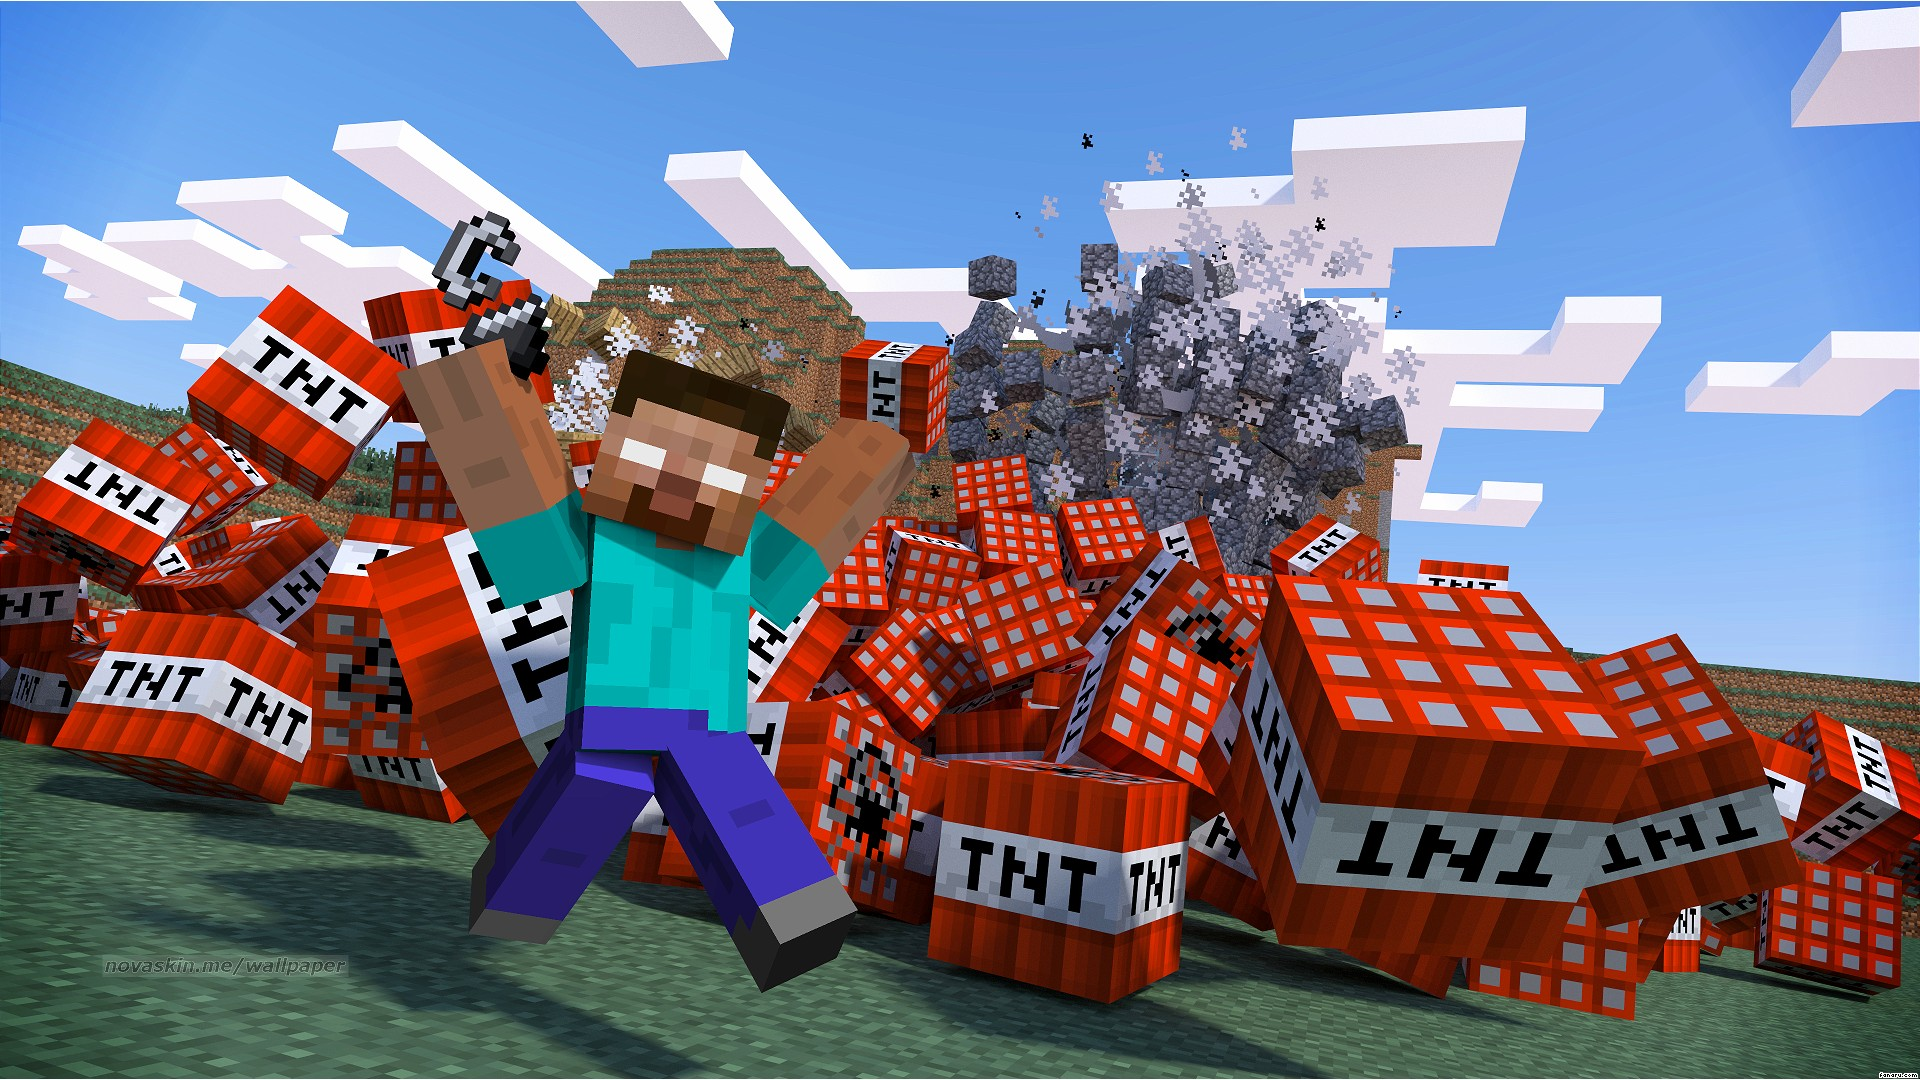 Minecraft Tnt Blast HD Minecraft Lb Photo Photo Realism 1920x1080